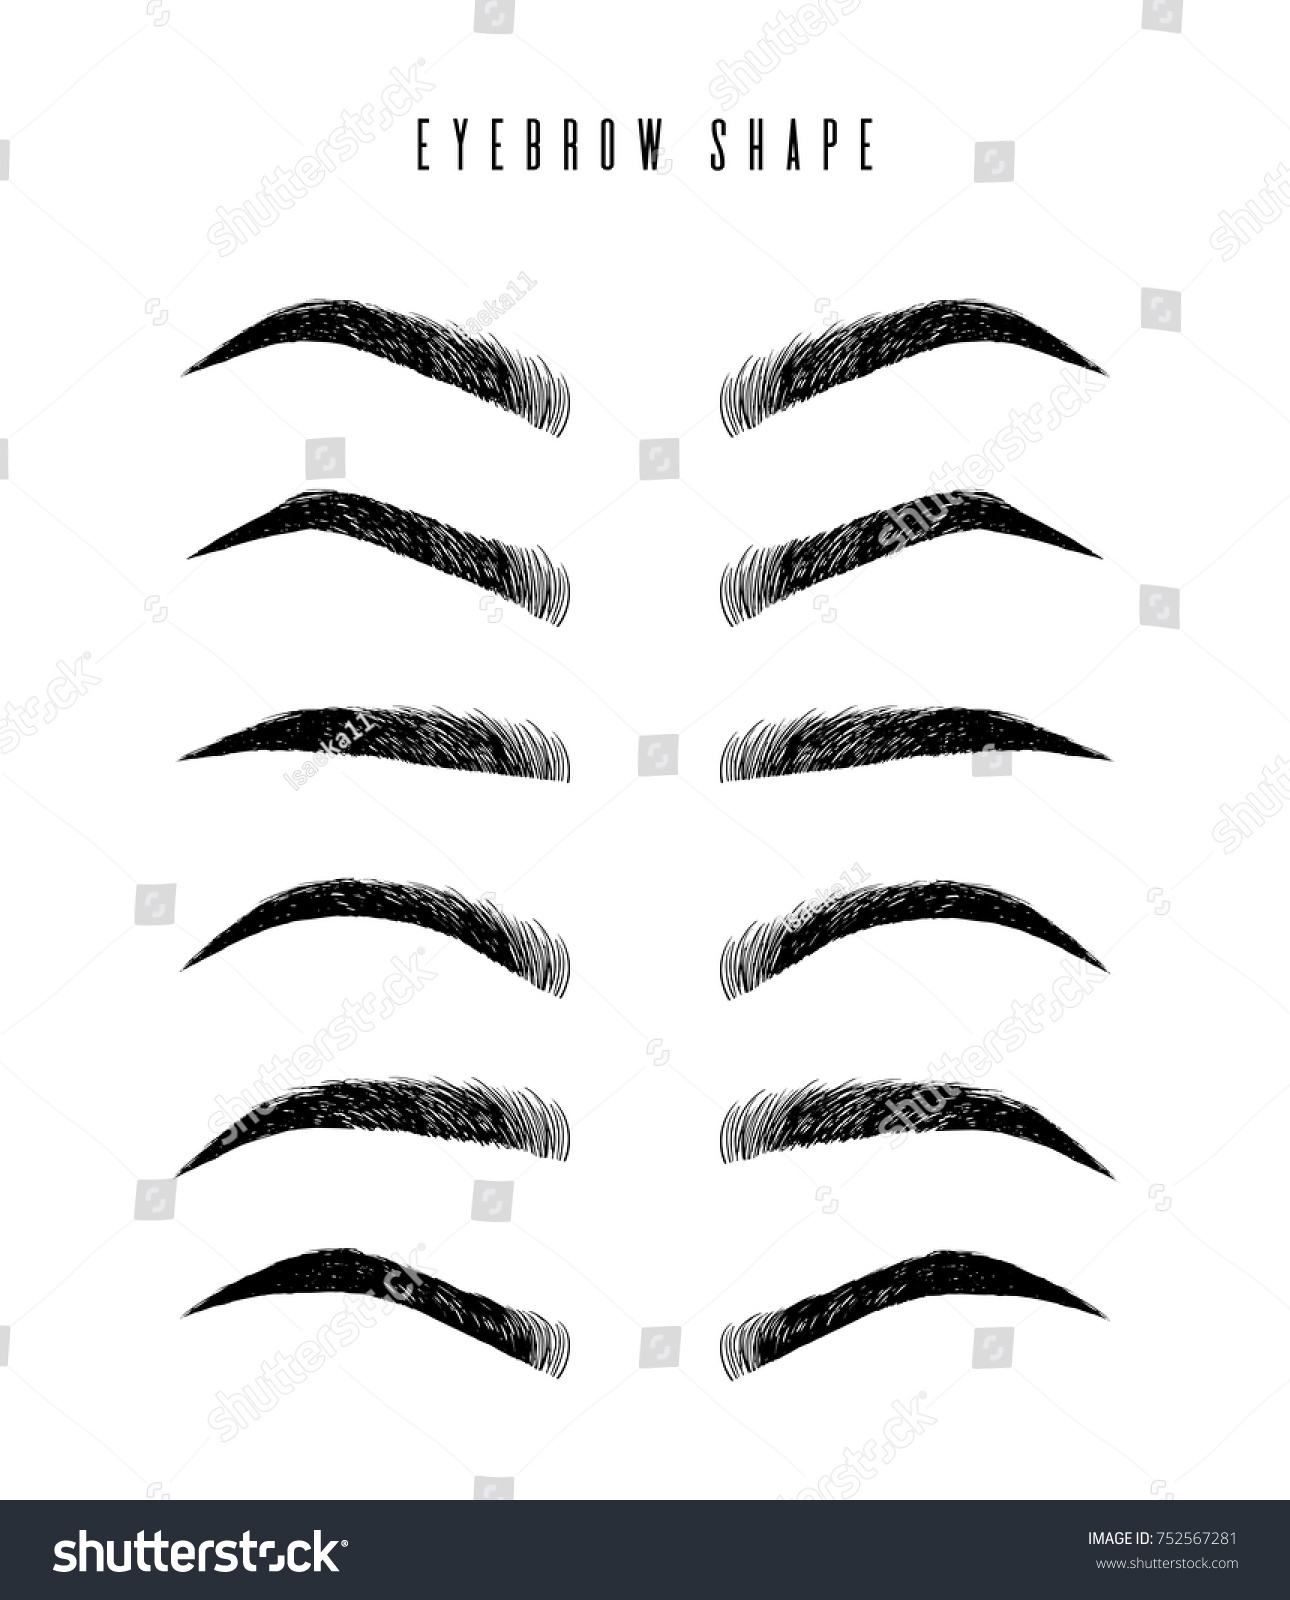 Eyebrow Shapes Various Types Eyebrows Classic Stock Vector Royalty